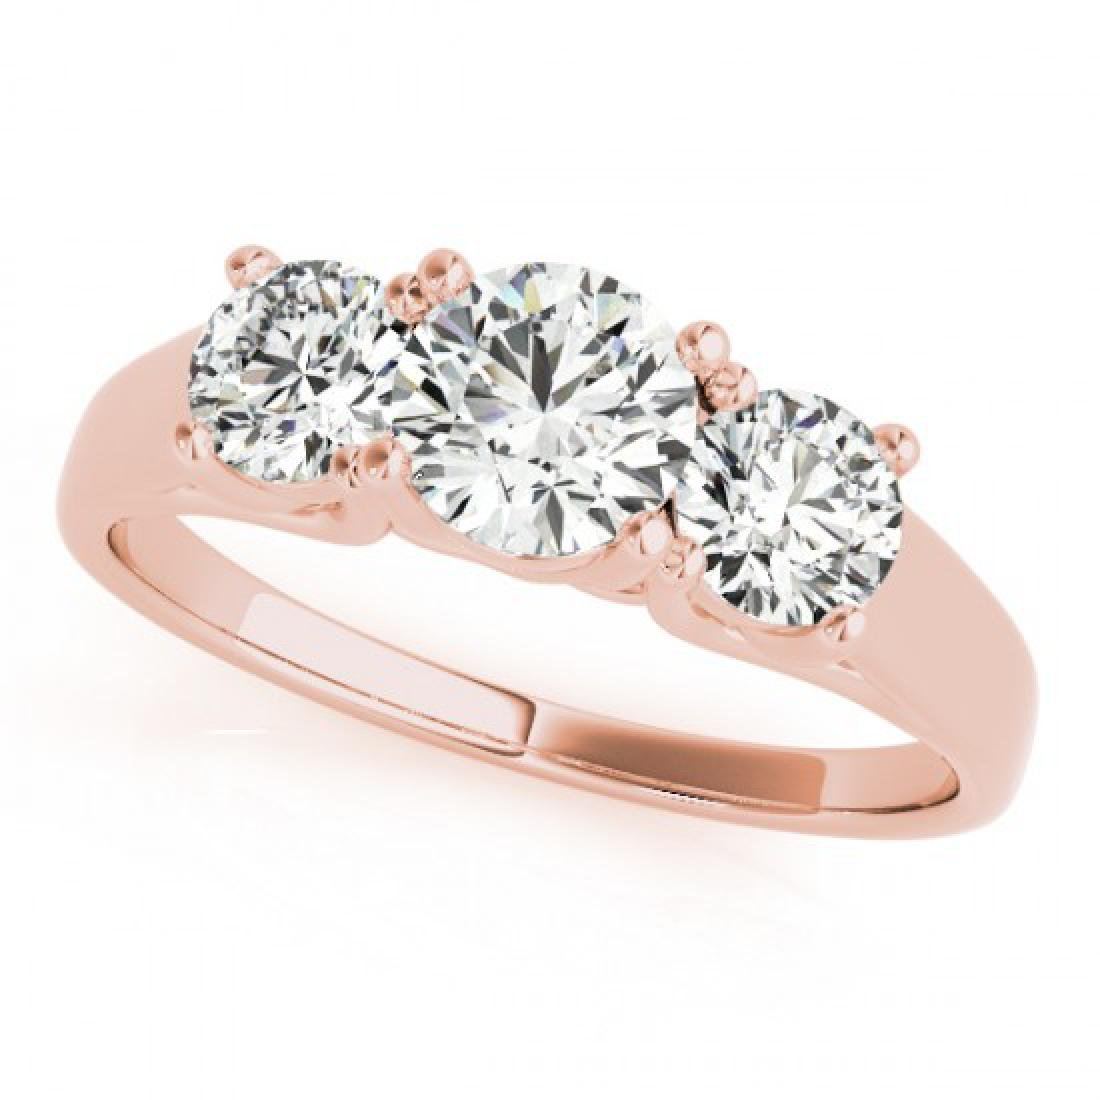 1.3 CTW Certified VS/SI Diamond 3 Stone Solitaire Ring